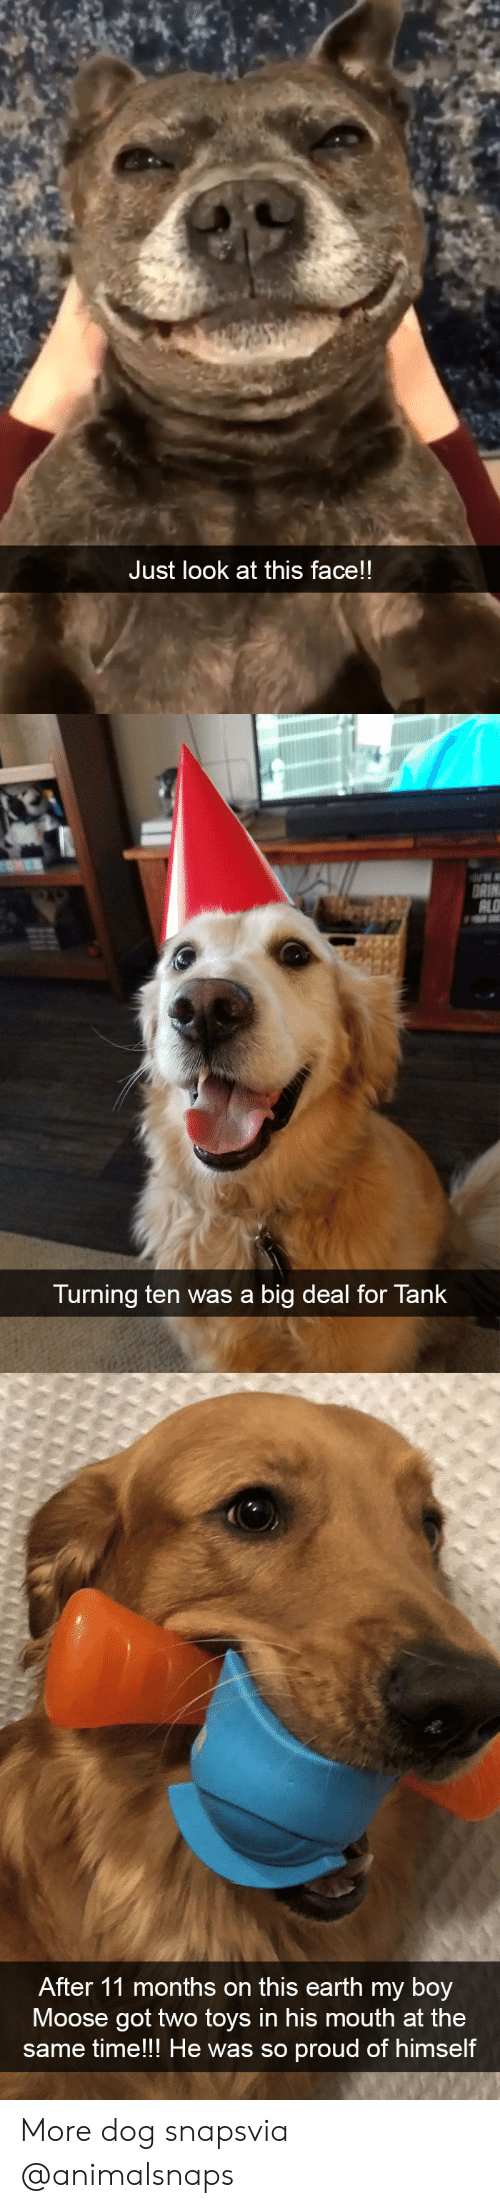 Target, Tumblr, and Earth: Just look at this face!!   ALO  Turning ten was a big deal for Tank   After 11 months on this earth my boy  9  Moose got two toys in his mouth at the  mell the was so proud of himse  same time!!! He was so proud of himself More dog snapsvia @animalsnaps